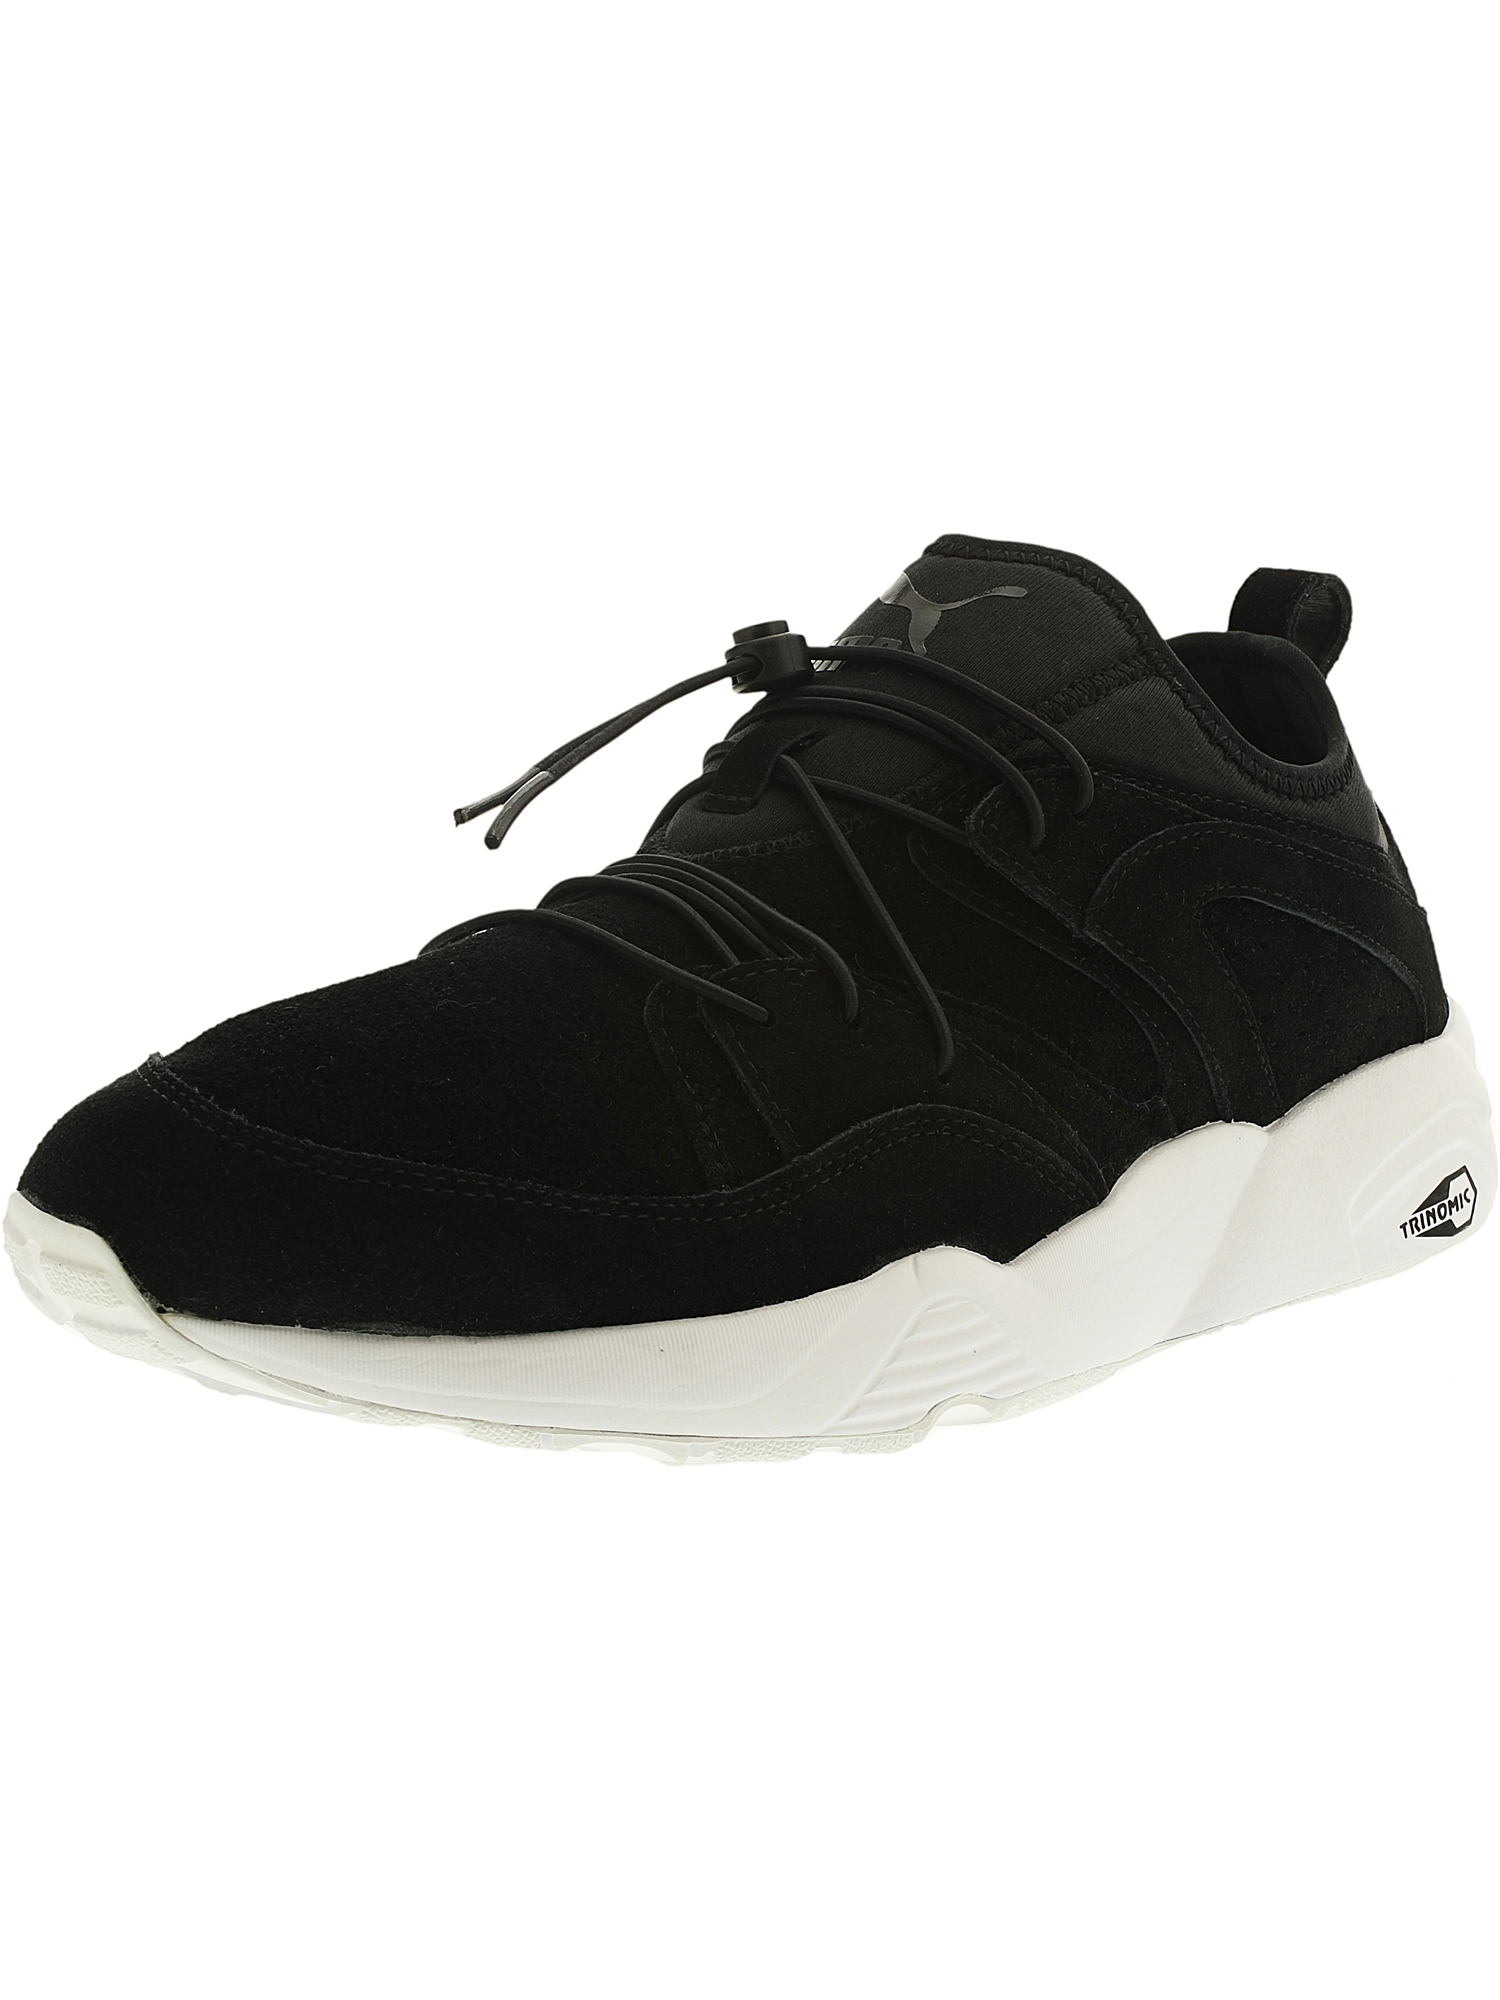 Puma Men's Blaze Of Glory Soft Leather/Textile Black Ankle-High Leather Running Shoe - 12M